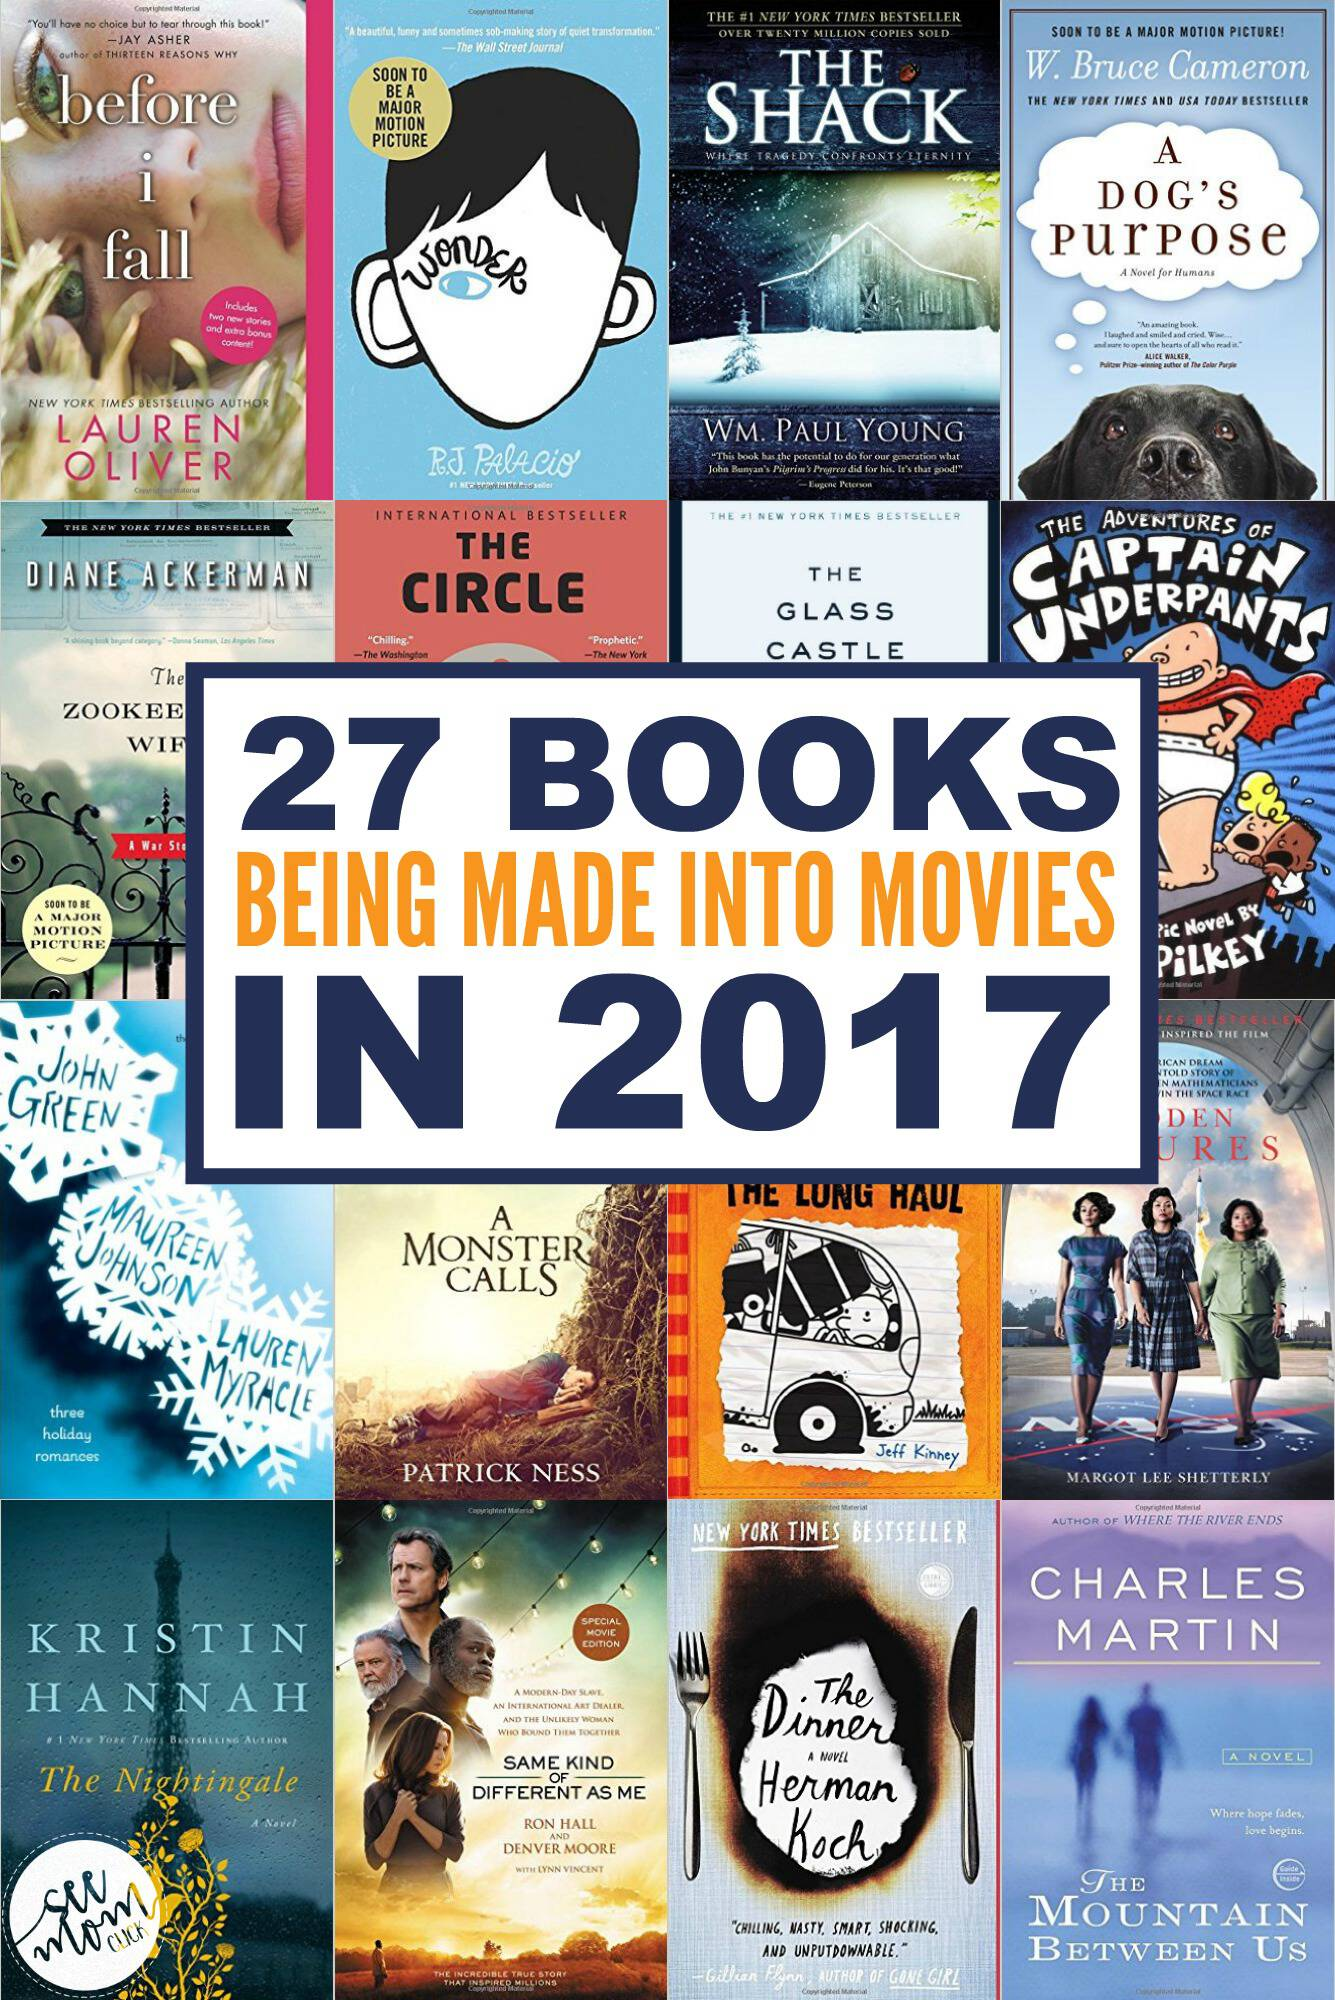 books being made into movies in 2017   see mom click